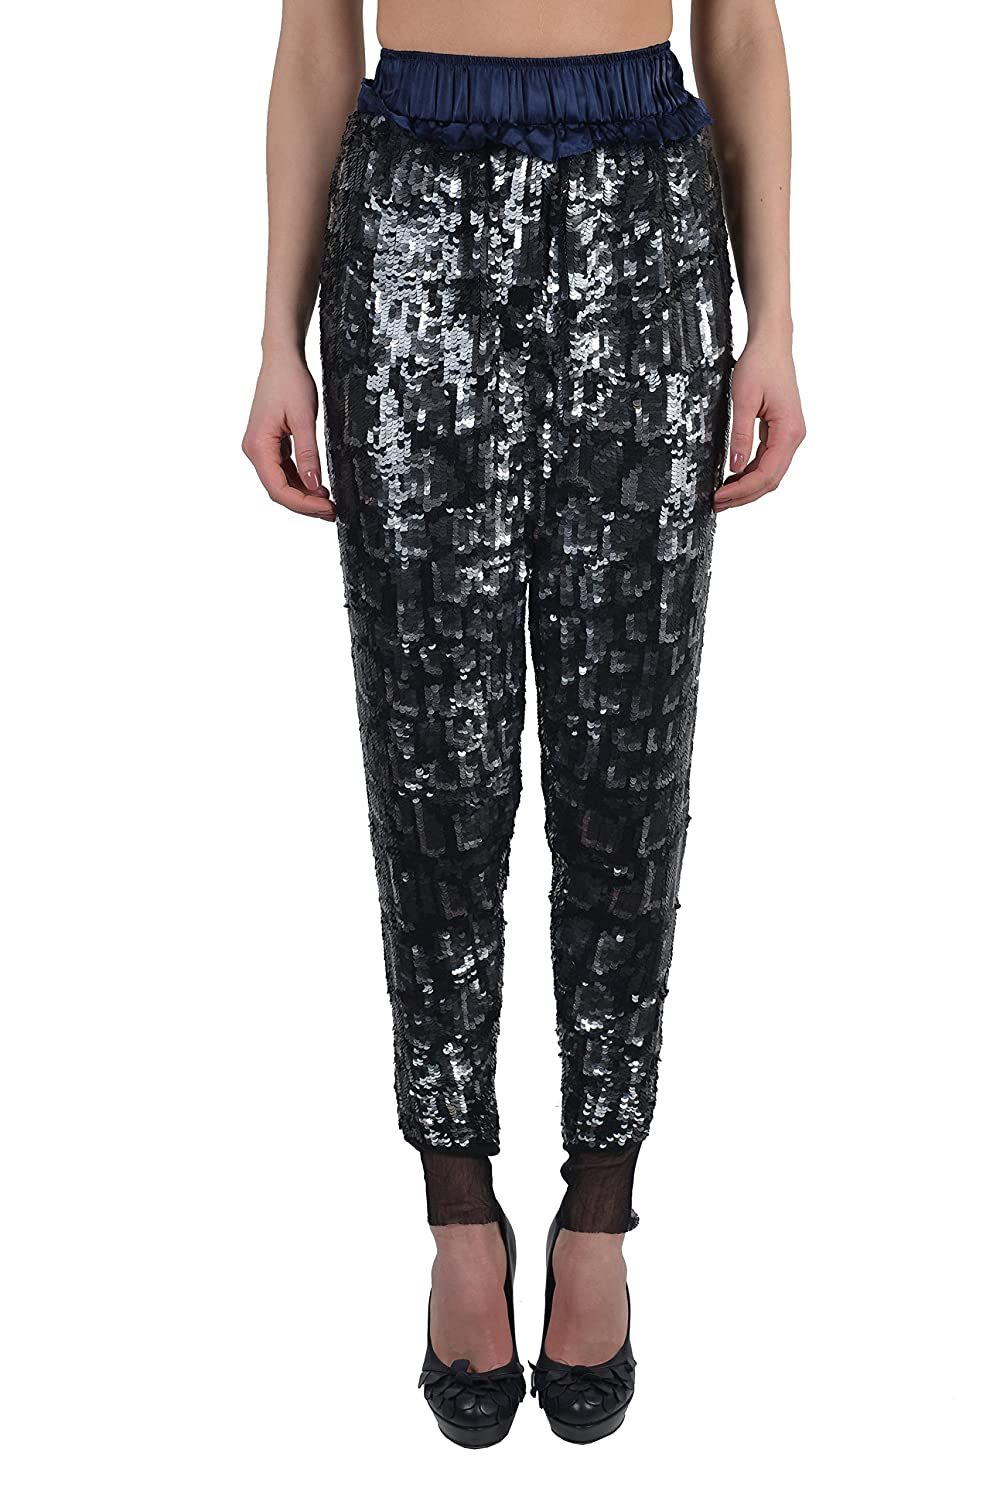 Just Cavalli Women's Multi-Color Sparkle Elastic Waist Casual Pants US 4 IT 40